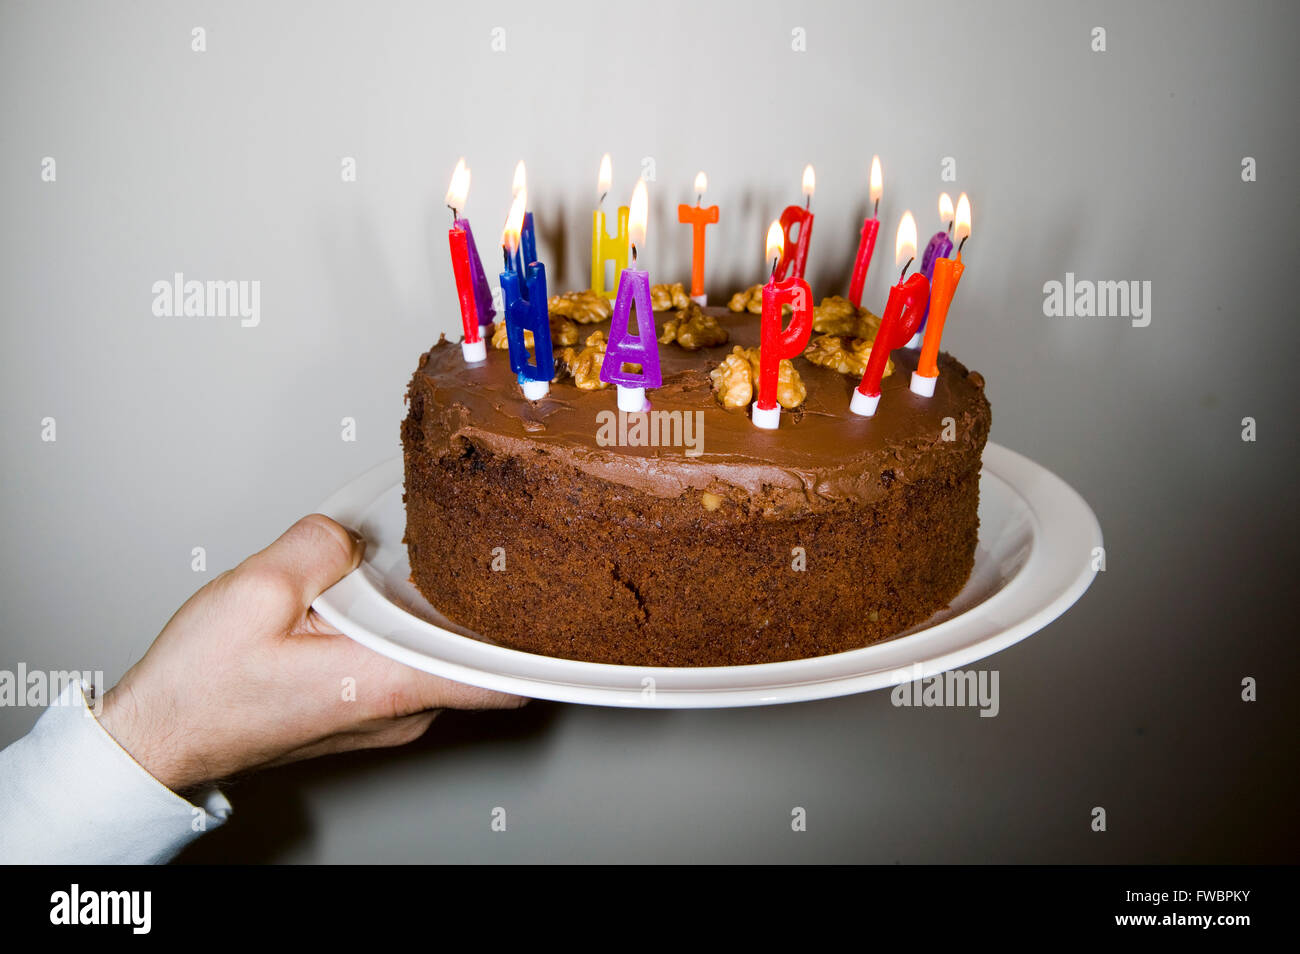 A Large Birthday Cake Is Offered Up For The Blowing Out Of Candles Whihc Edge In Letters Spelling Happy